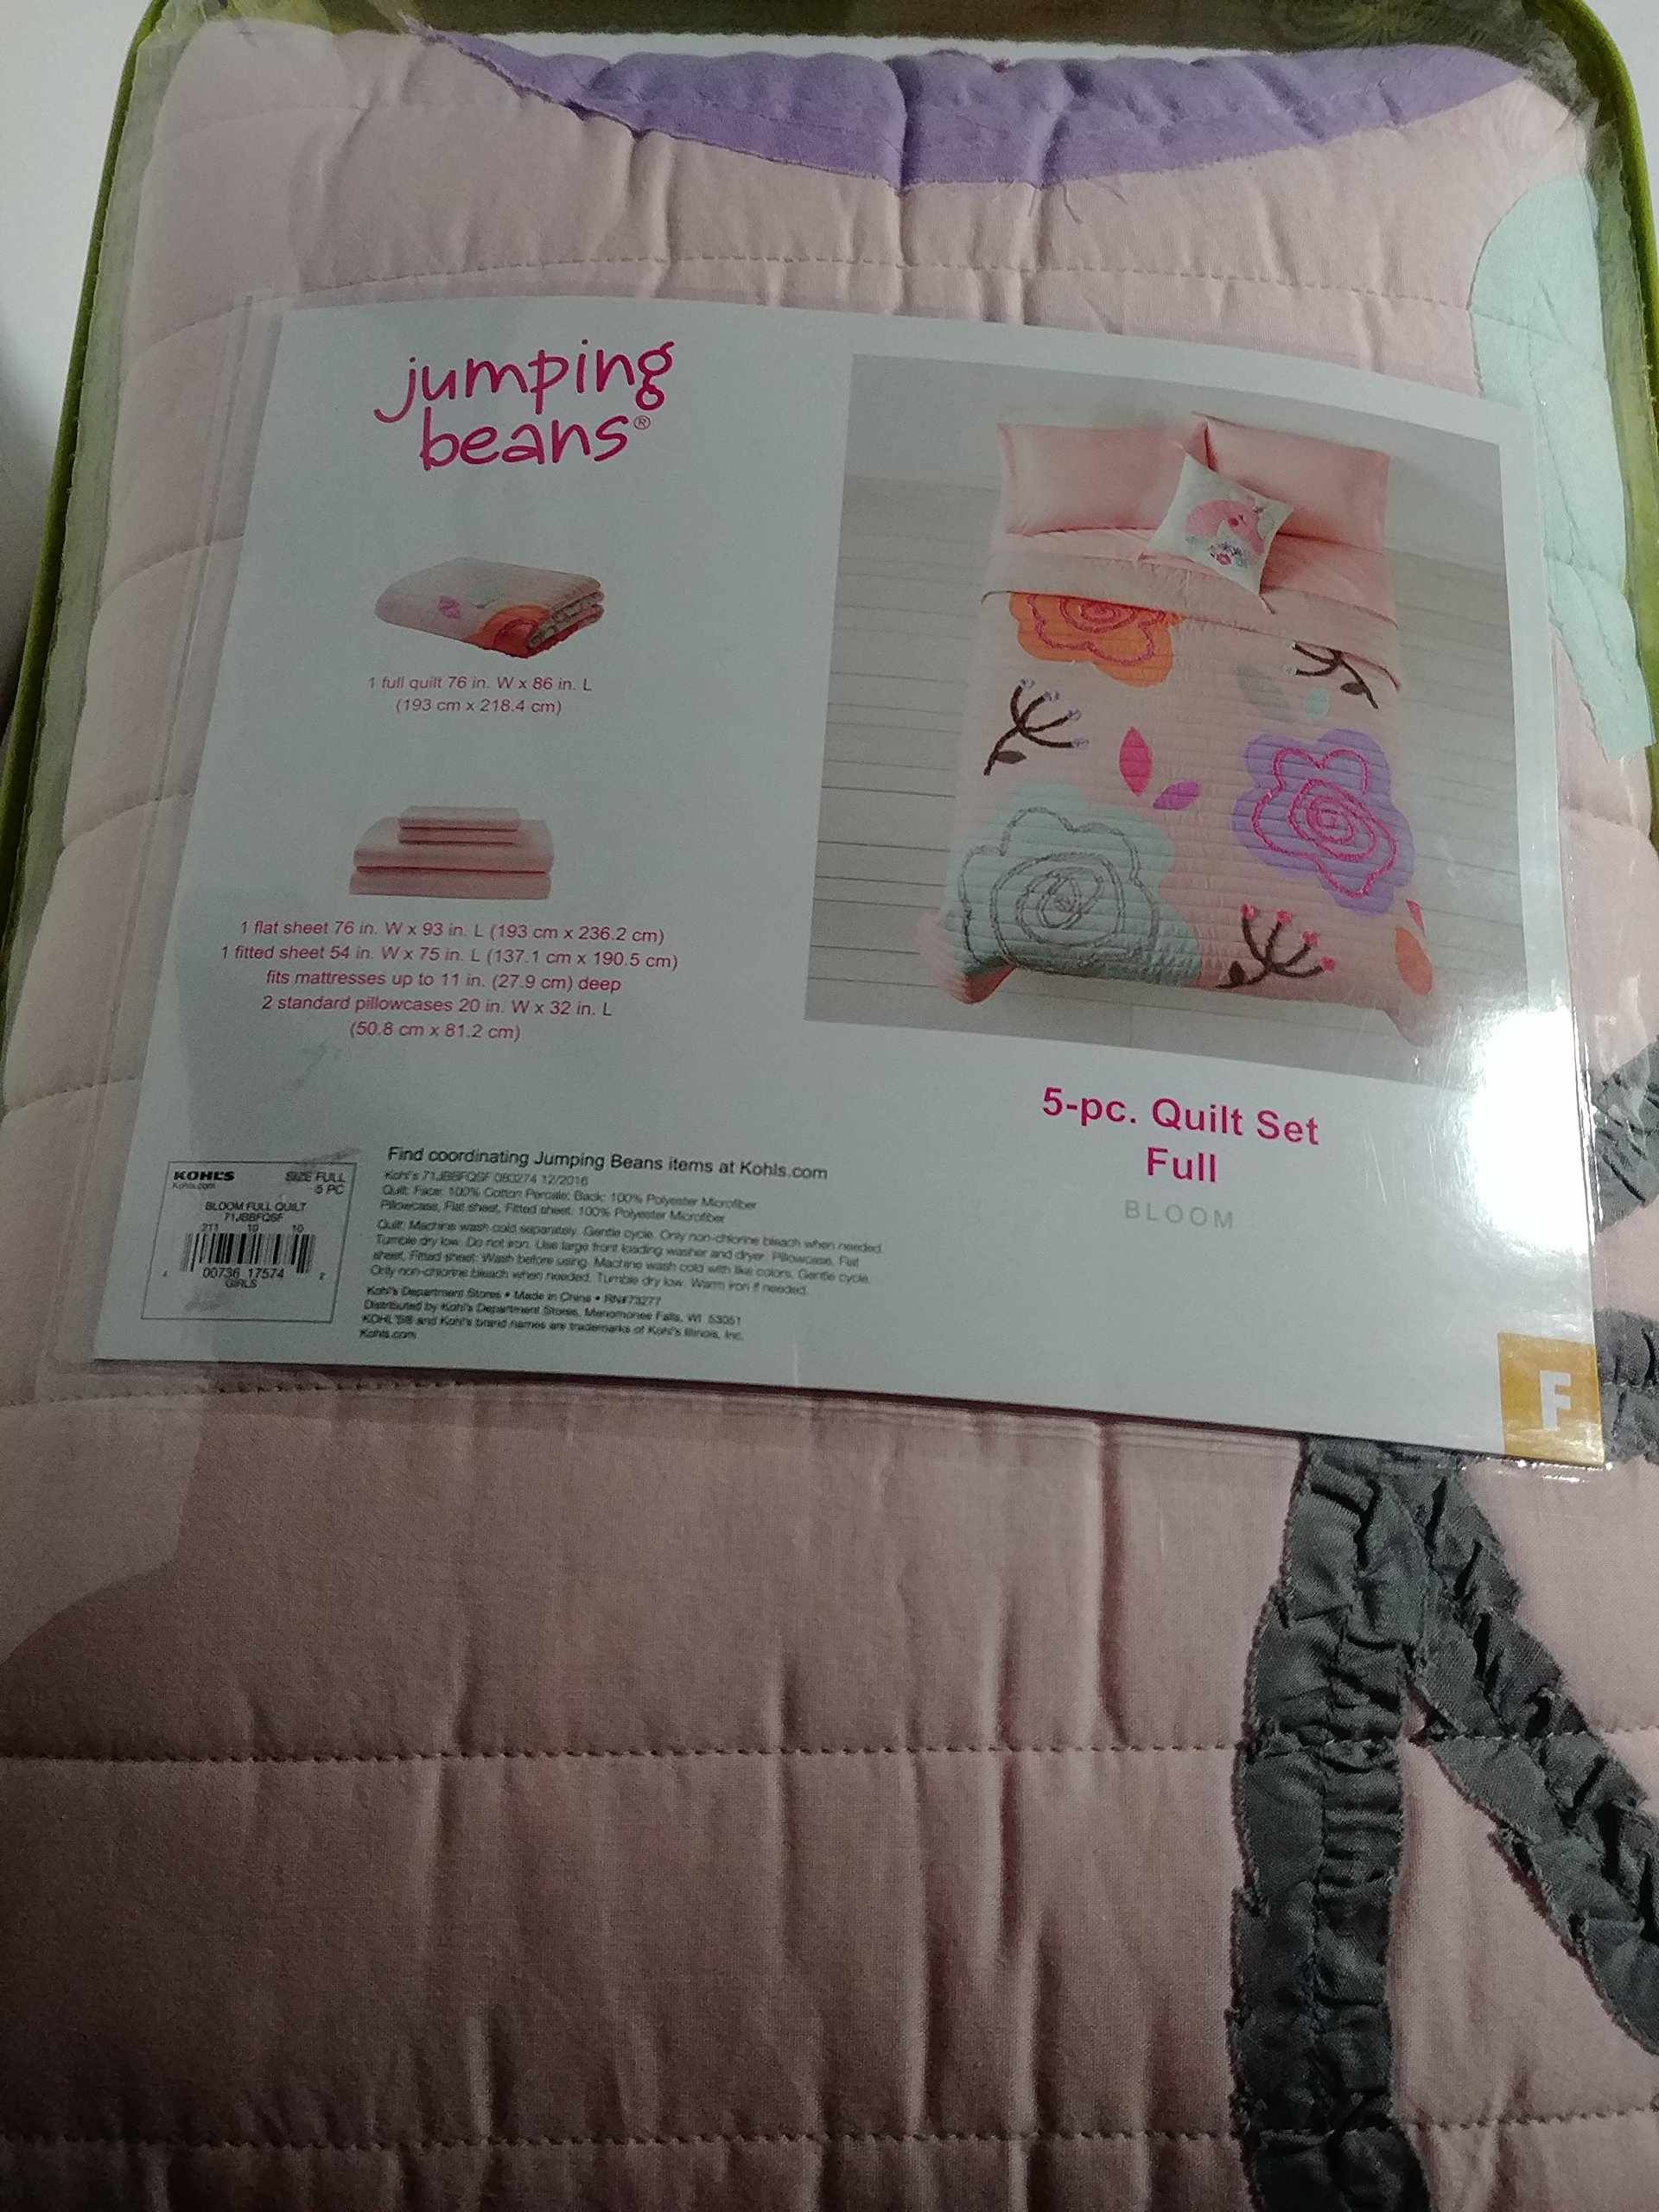 Jumping Beans Back to School Quilt Bedding Set Bloom 5 Piece, Full